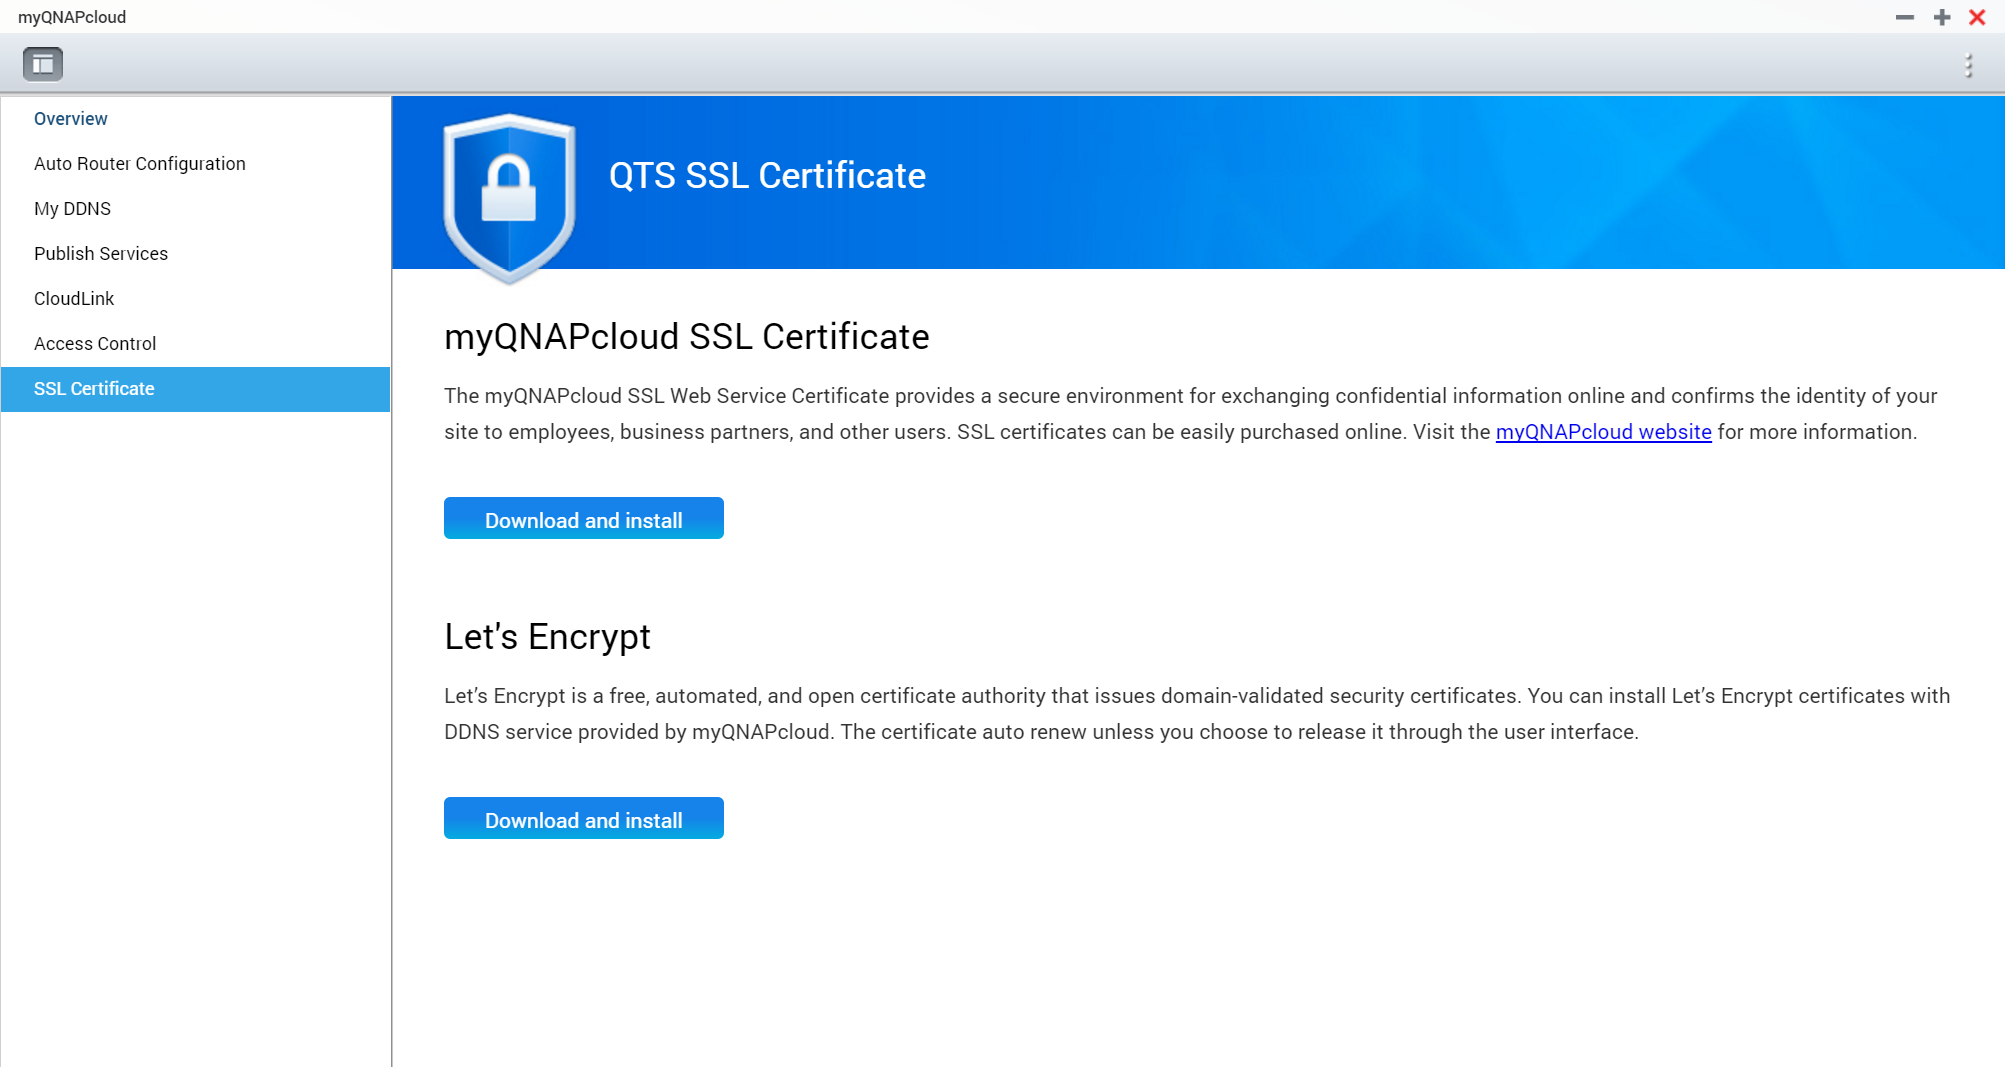 Qts ssl certificate qnap select utilities nas qnap 1betcityfo Image collections